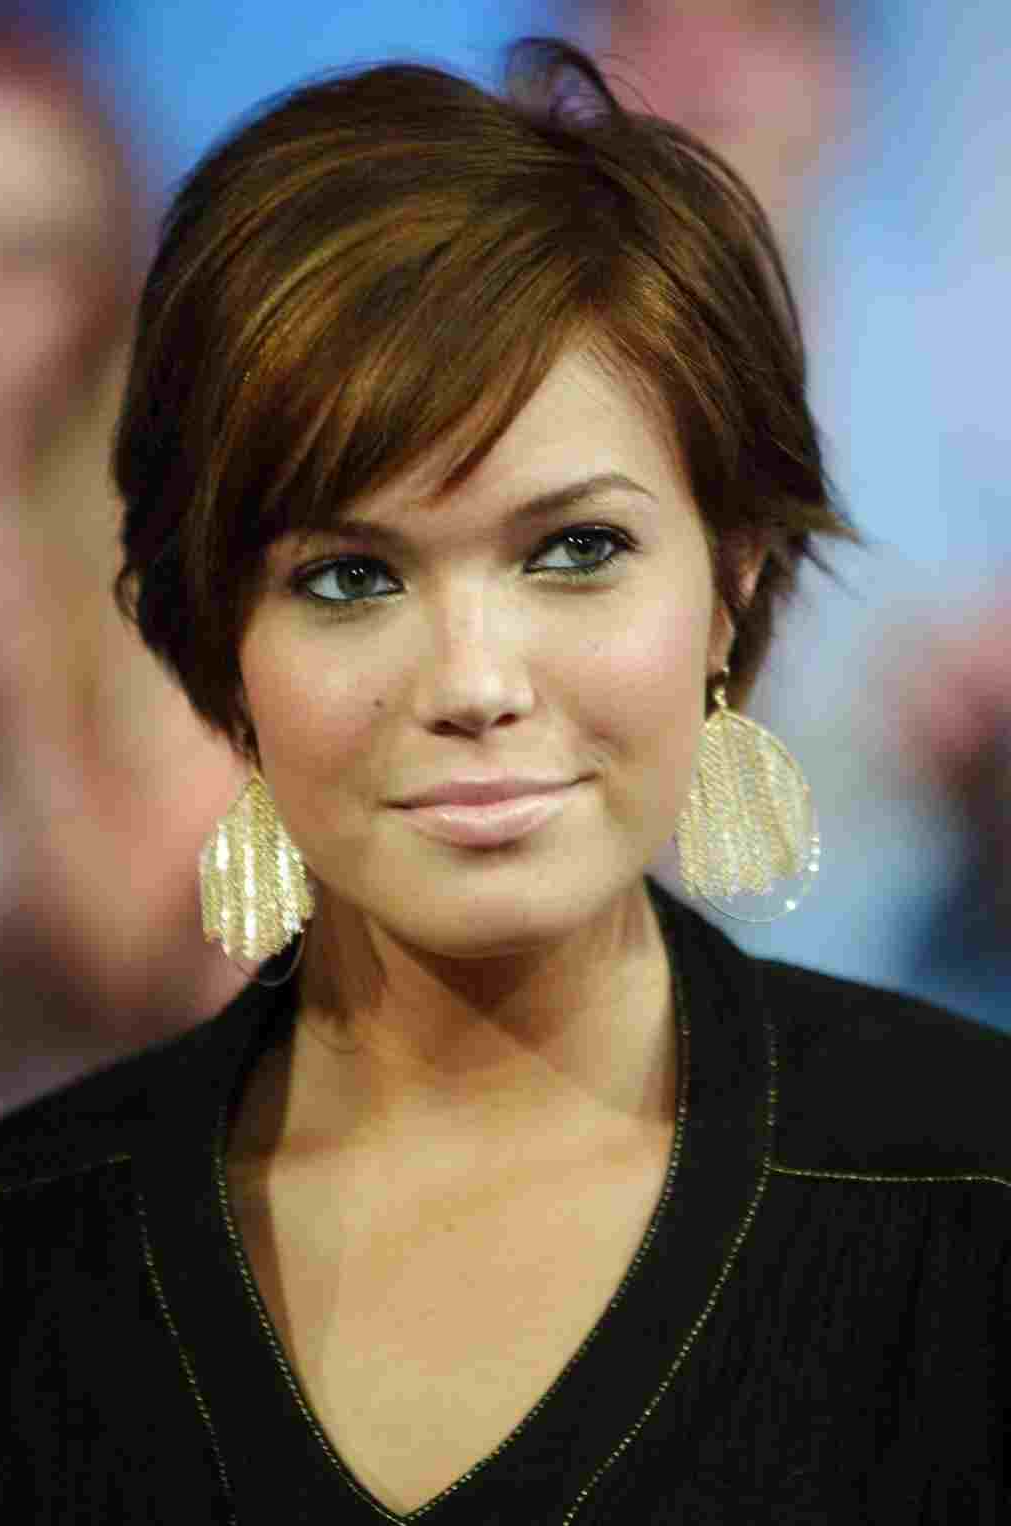 Rhmarvinmcquittycom Balayagehair Ideas Balayage For Hair Within Brunette Short Hairstyles (View 9 of 25)